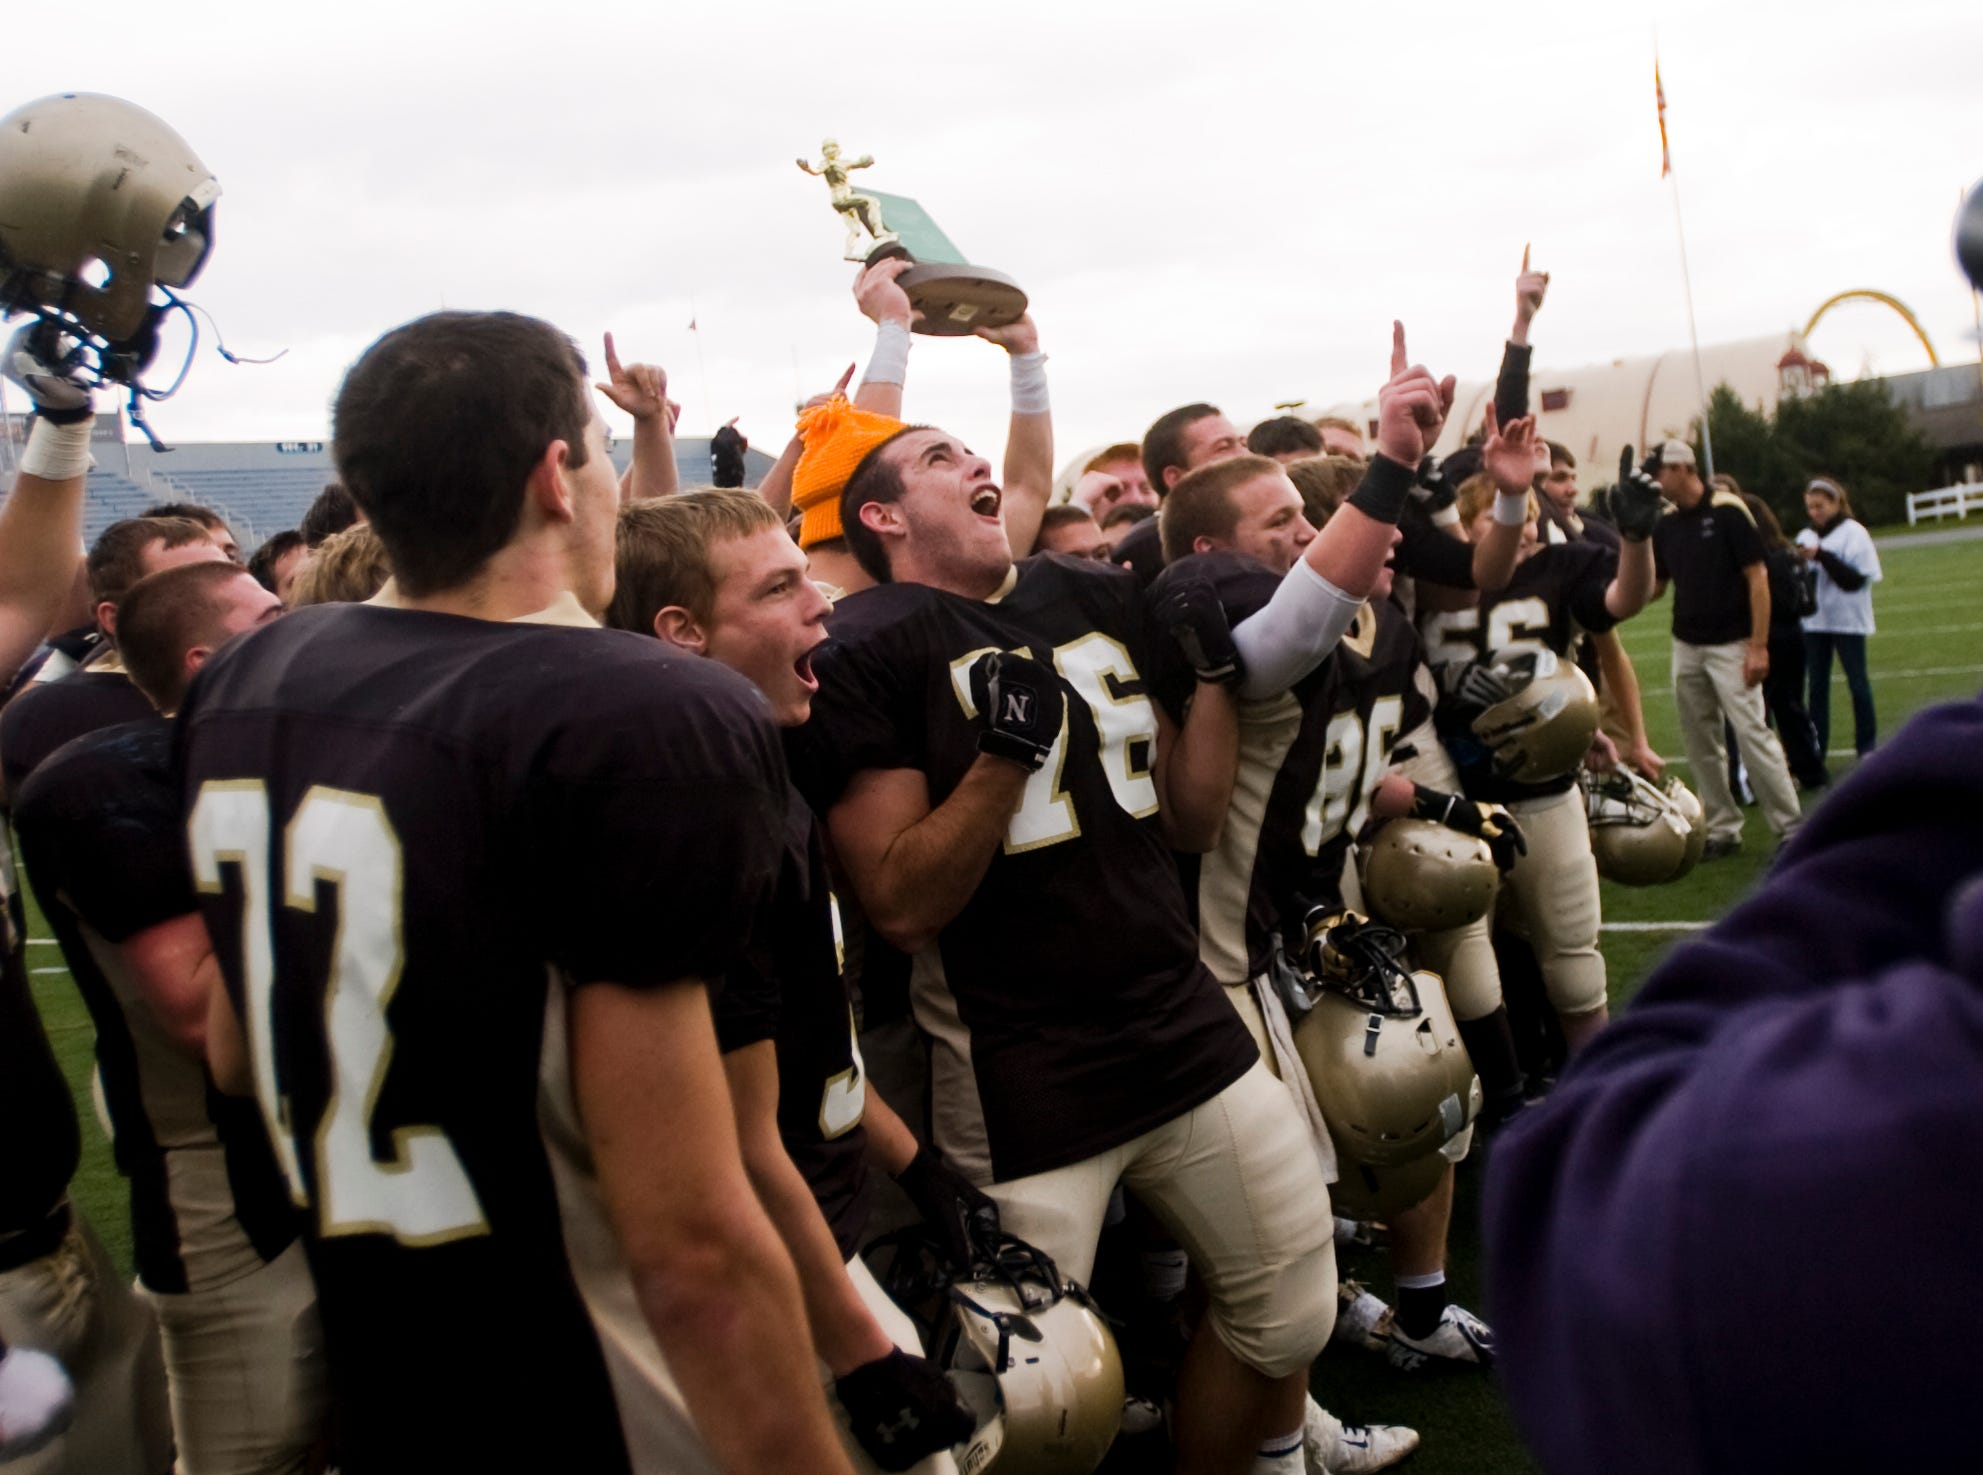 In this file photo from 2012, Delone Catholic players celebrate with their trophy in front of TV cameras after their win against Steelton-Highspire in the District 3 Class A football championship on Friday at Hershey Stadium.